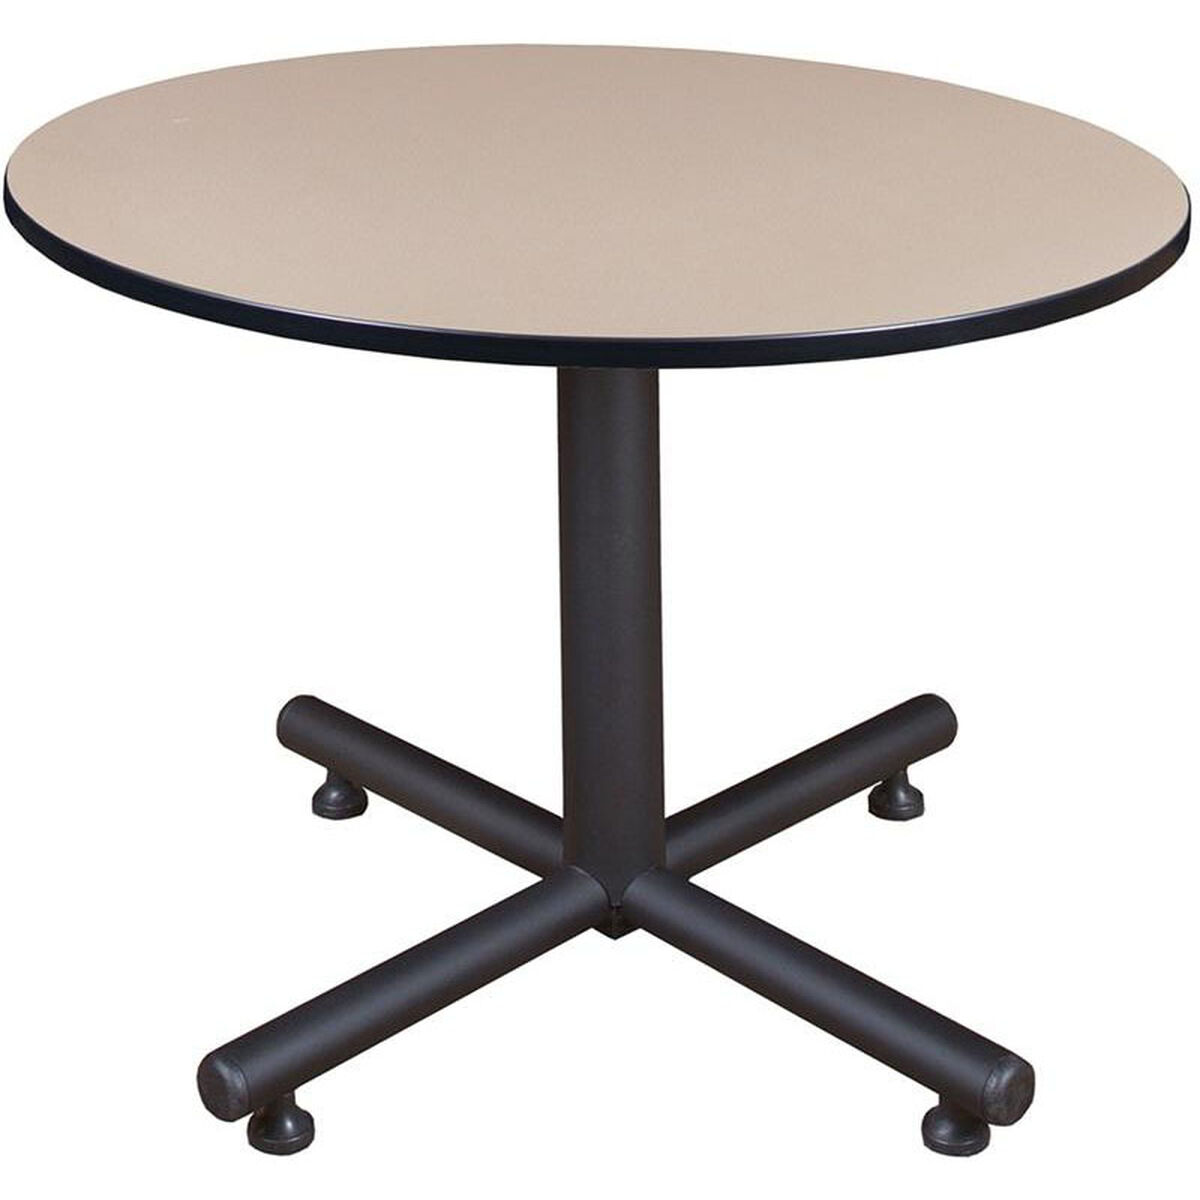 Kobe 48 Round Laminate Breakroom Table With Pvc Edge Beige